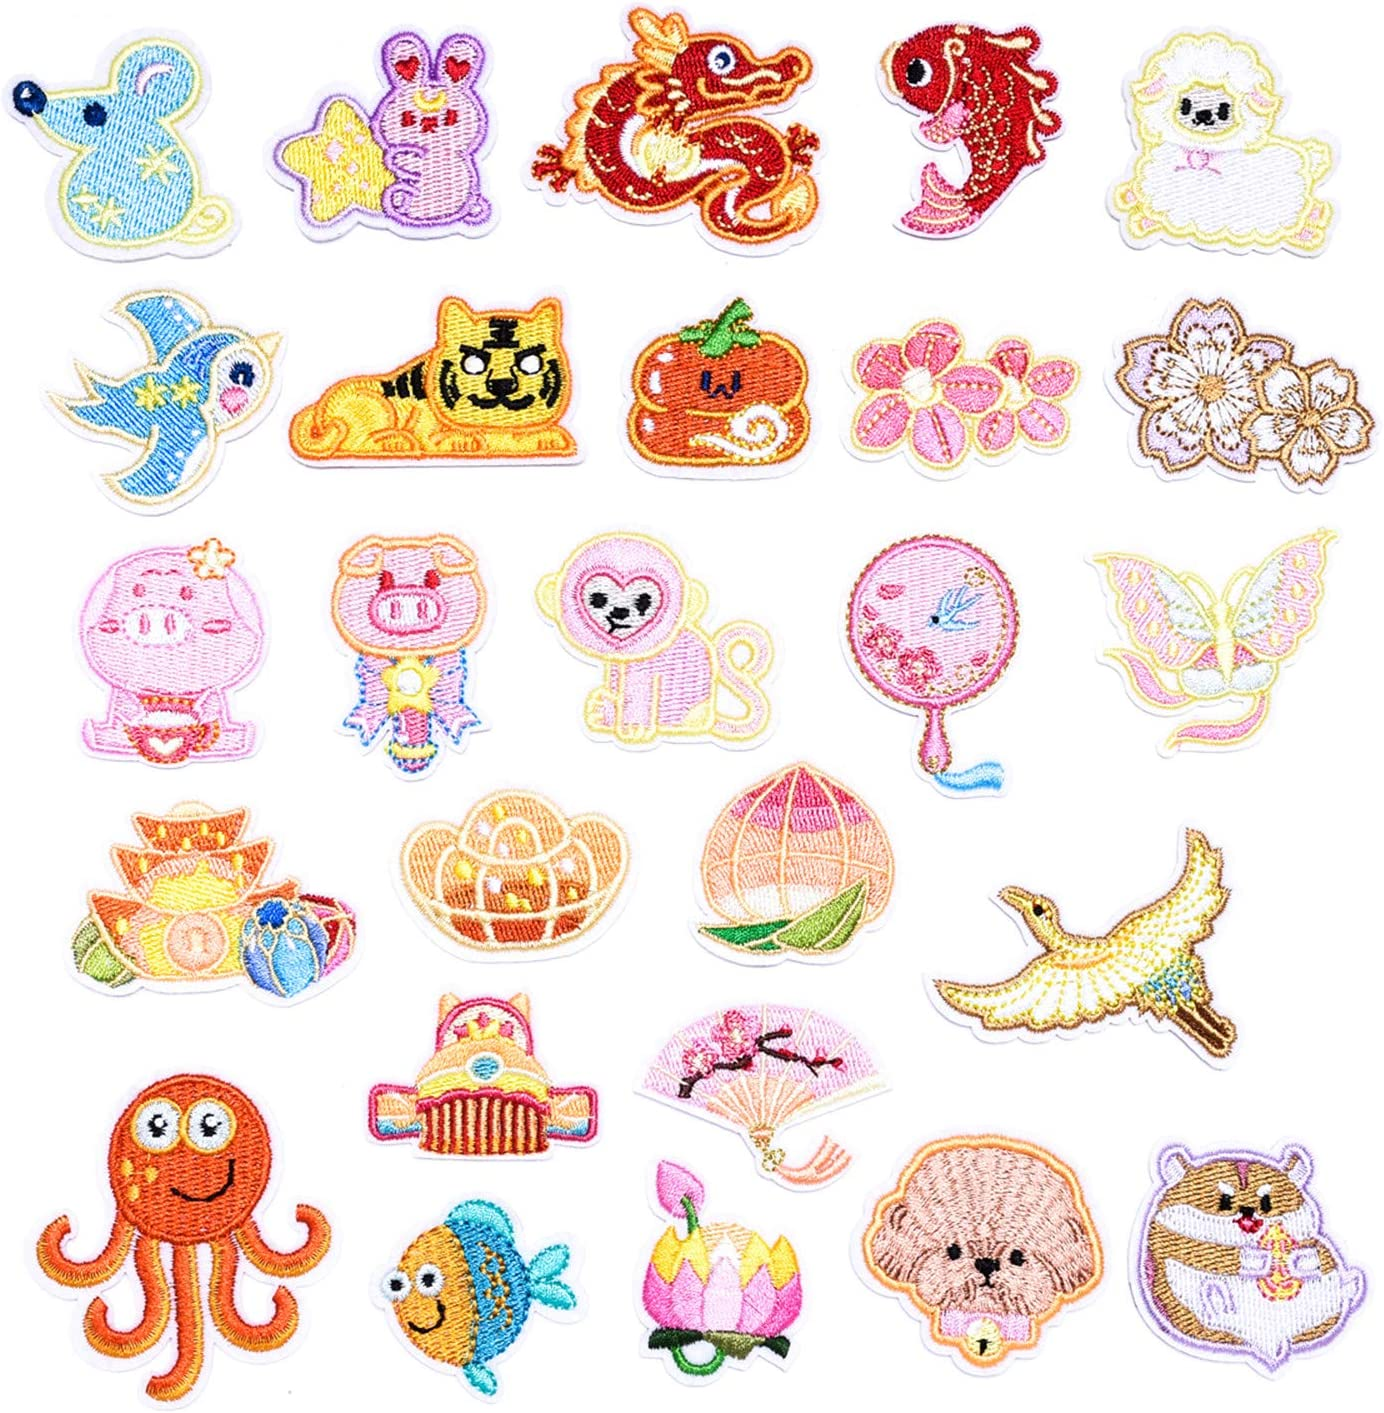 Butie. 26pcs Embroidered Patch Sew On/Iron On Patches Applique Accessories Assorted Size Decoration Patches for DIY Jeans Jacket Clothing Handbag Shoes Caps (26PCS-RF-56)